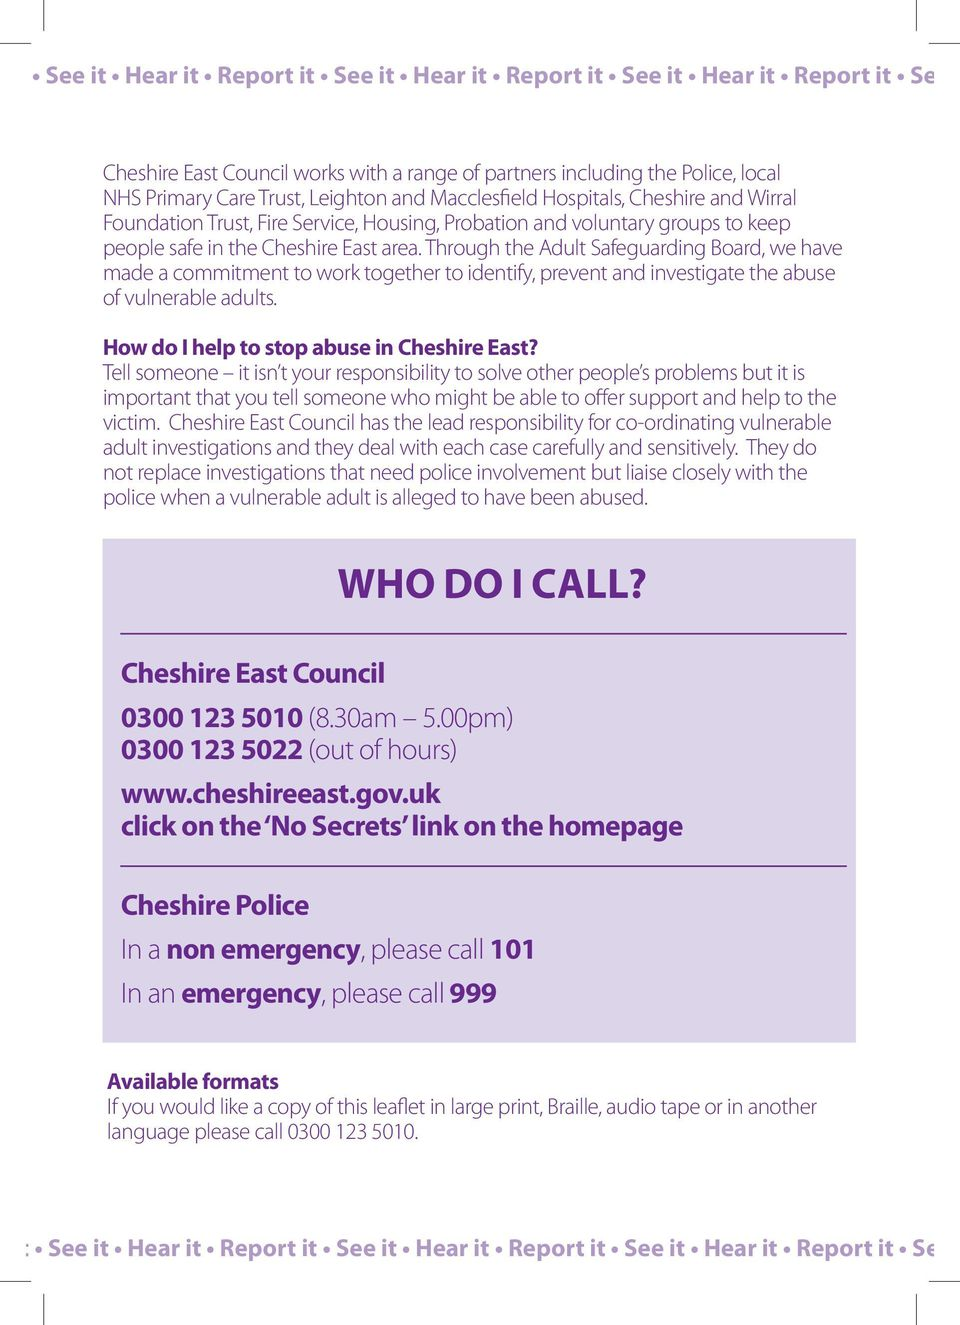 Through the Adult Safeguarding Board, we have made a commitment to work together to identify, prevent and investigate the abuse of vulnerable adults. How do I help to stop abuse in Cheshire East?